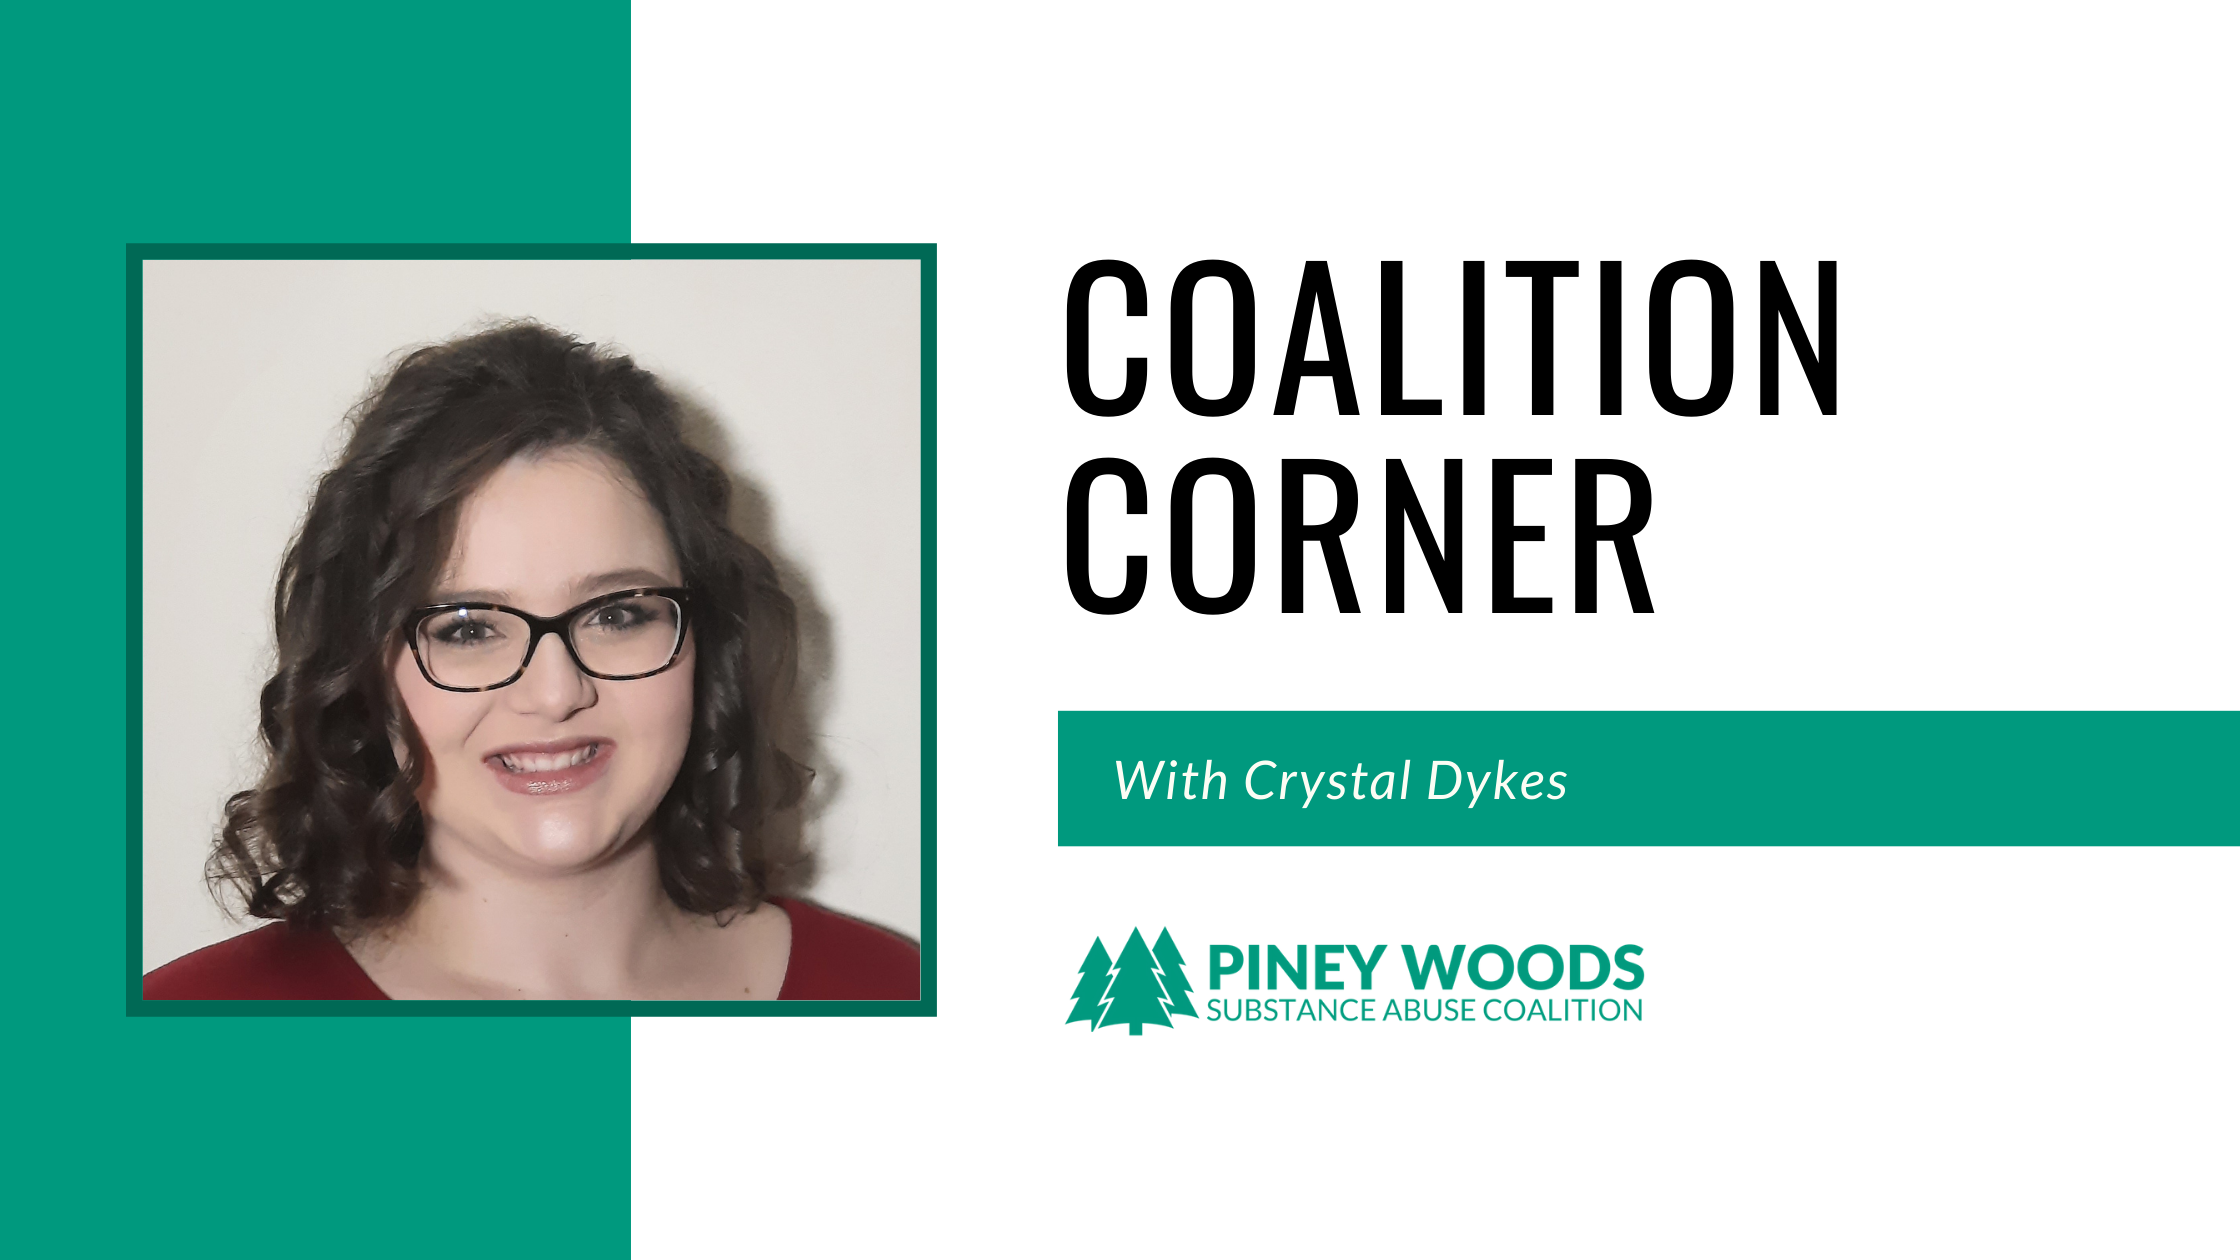 Coalition Corner with Crystal Dykes